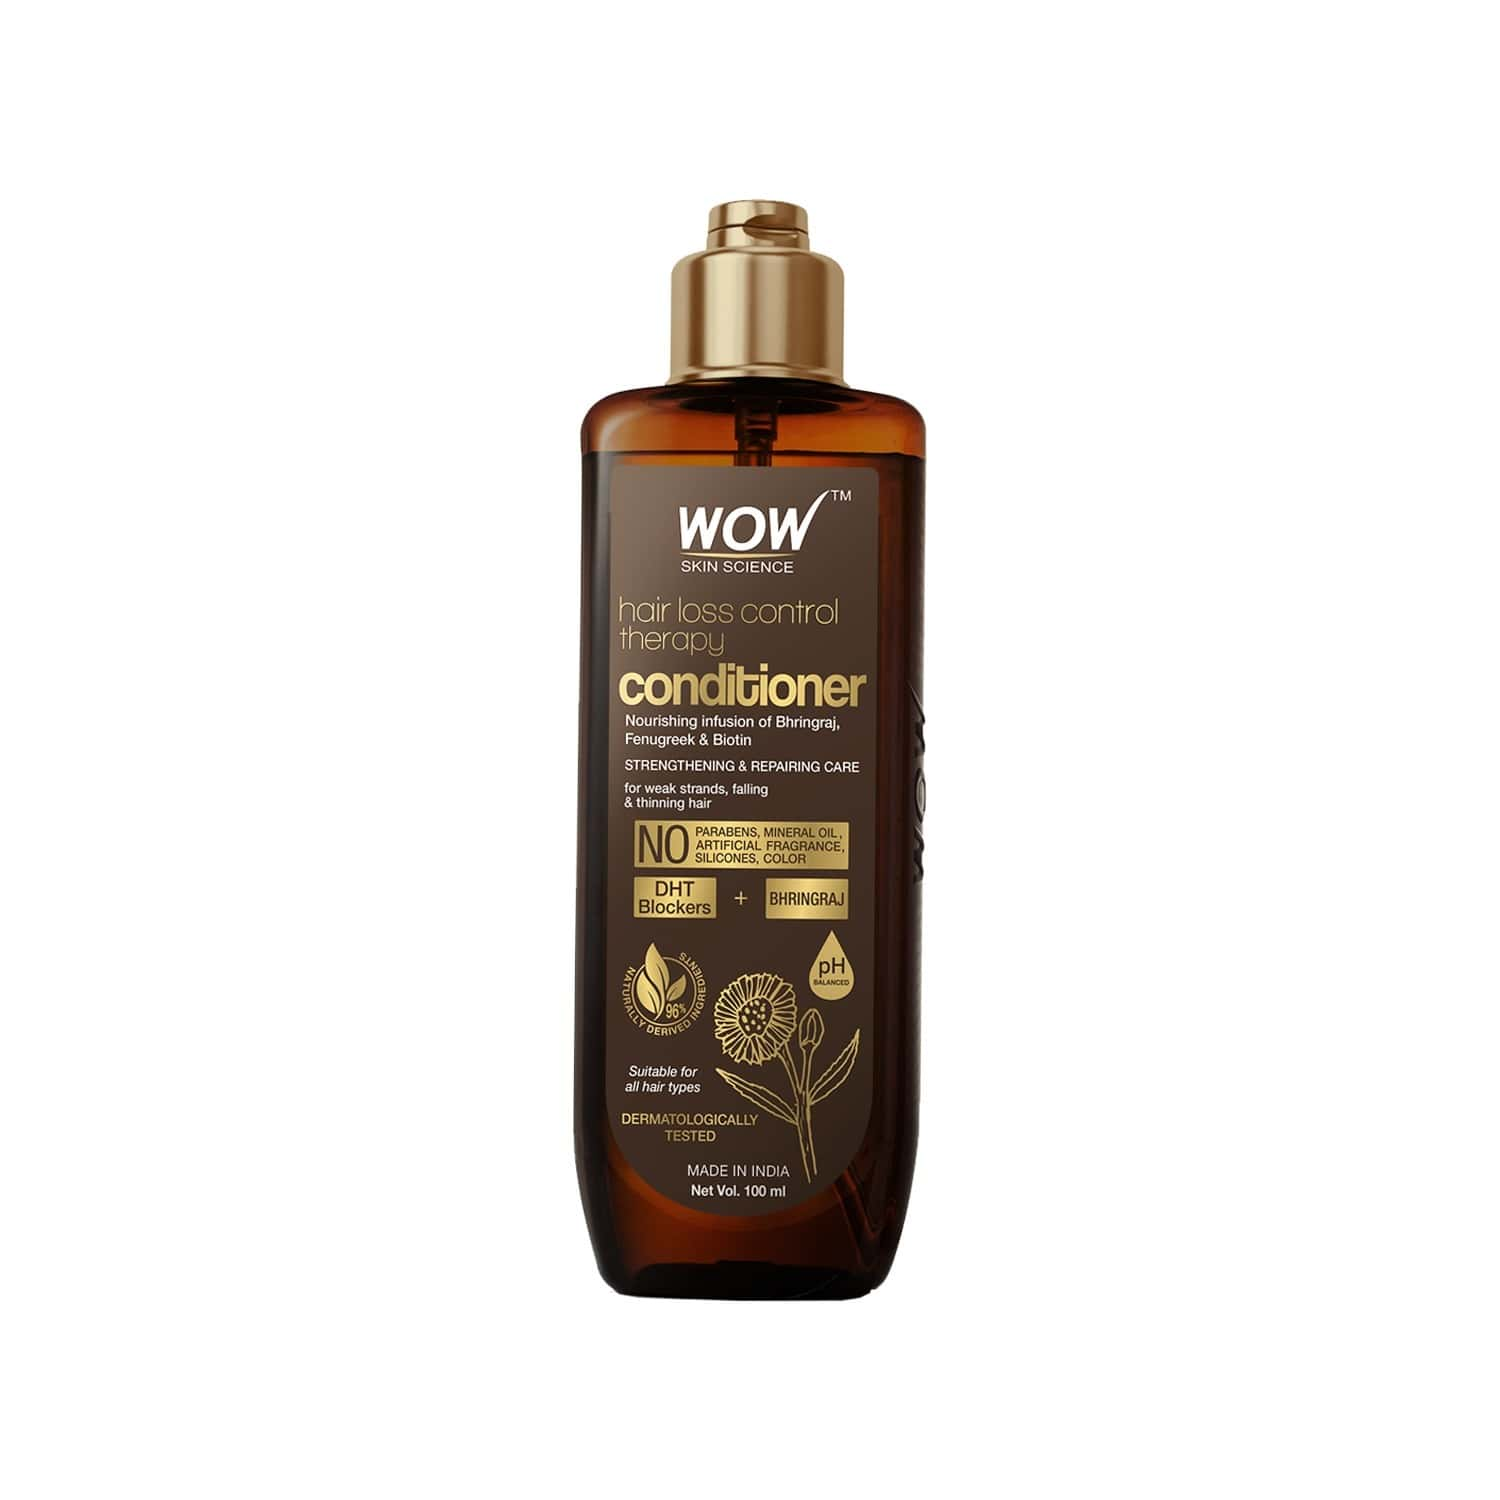 Wow Skin Science Hair Loss Control Therapy Conditioner - 100ml